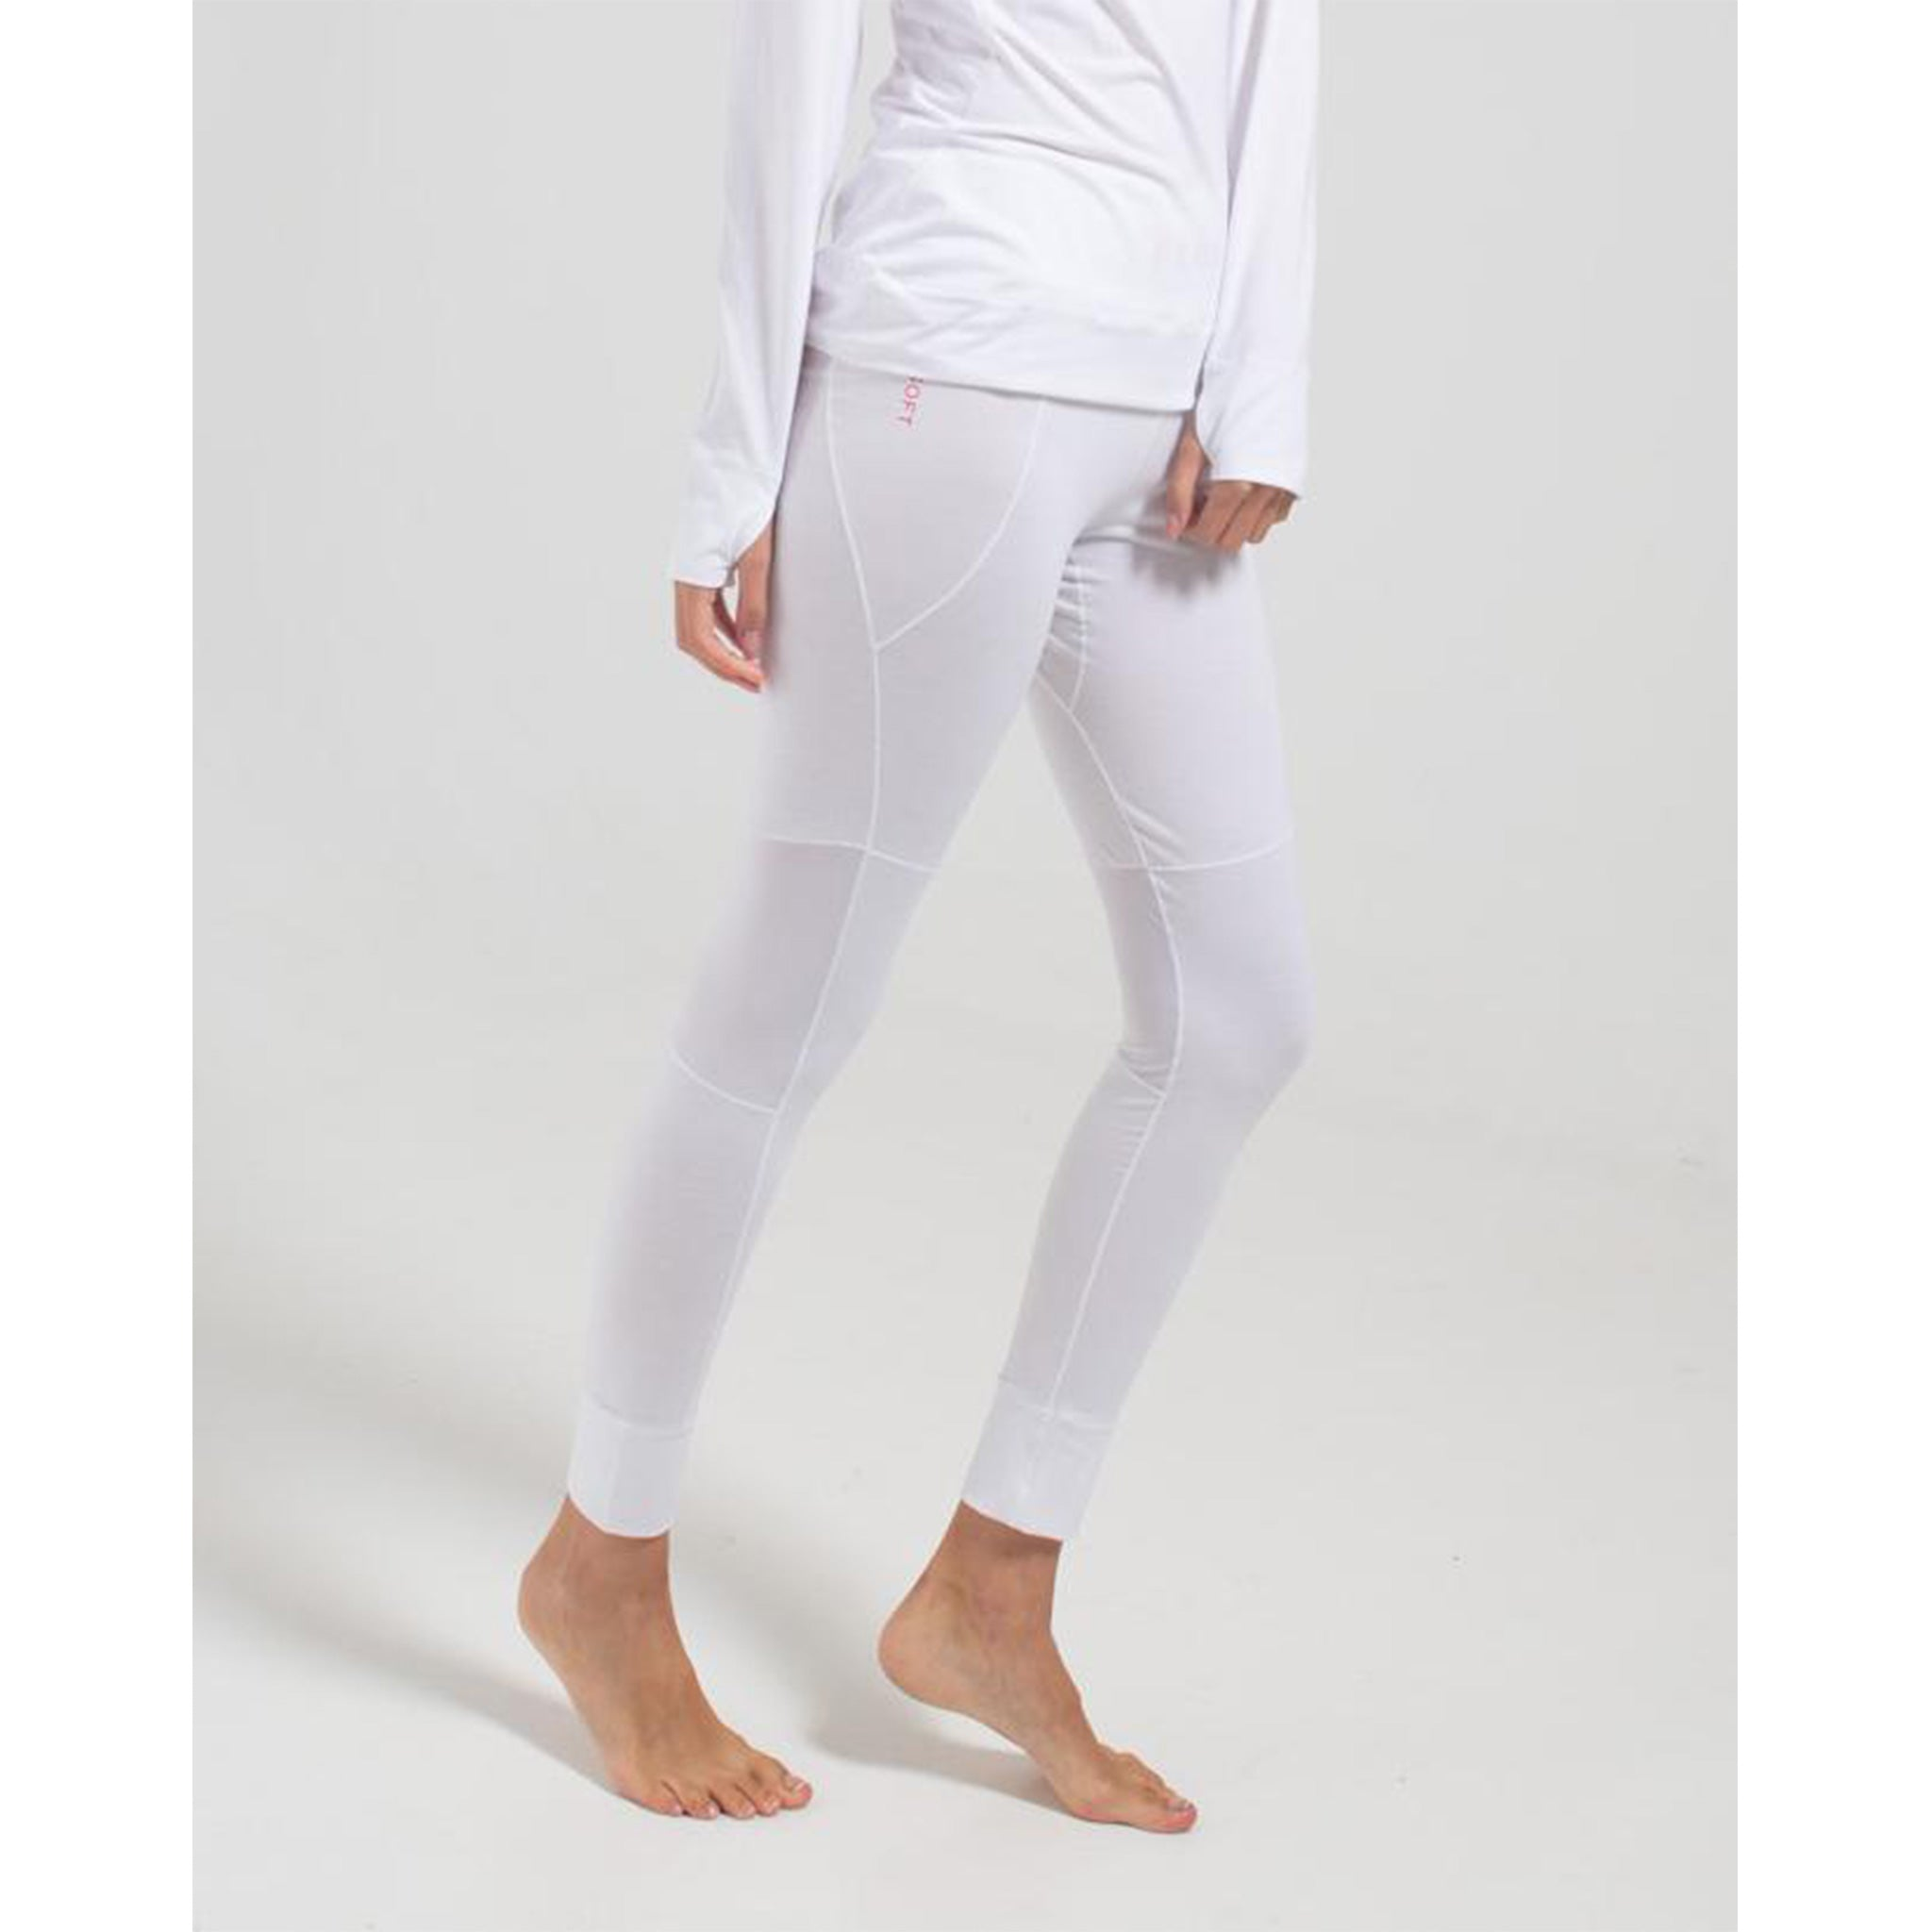 All Action Full Length Base Layer Bottoms